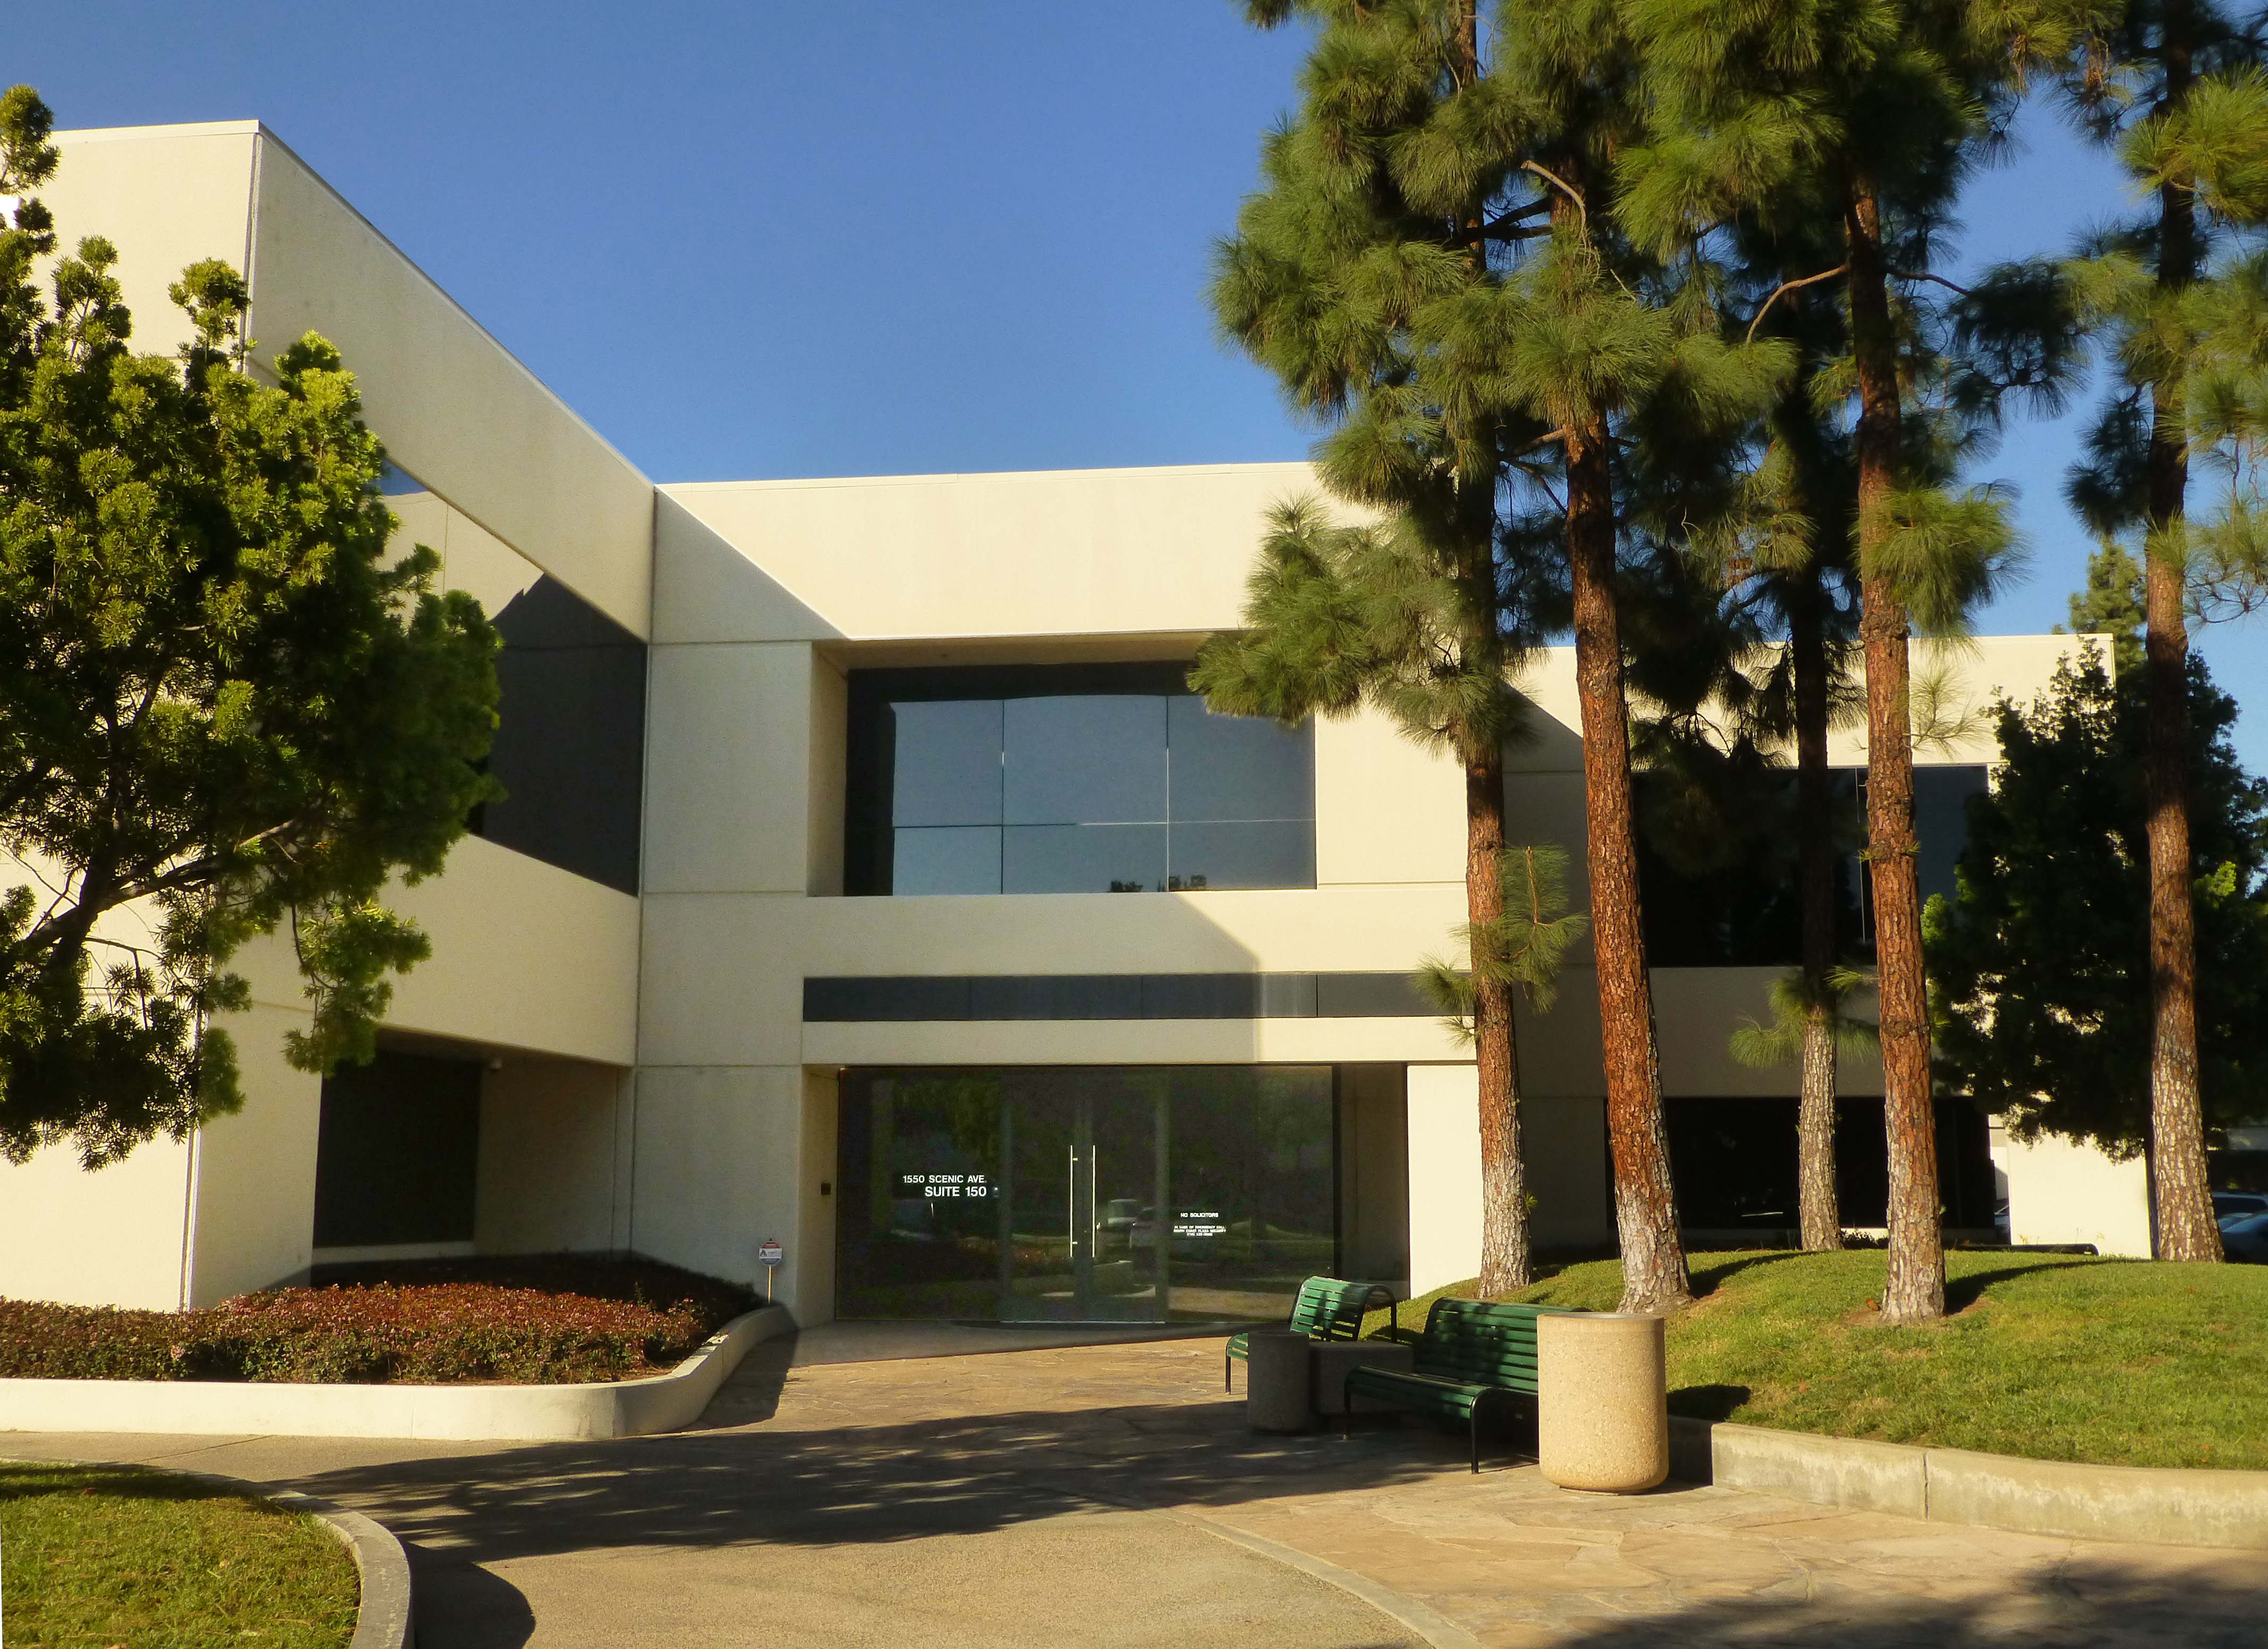 thumbnail image for Stacks Bowers Galleries Opens New Company Headquarters in Southern California